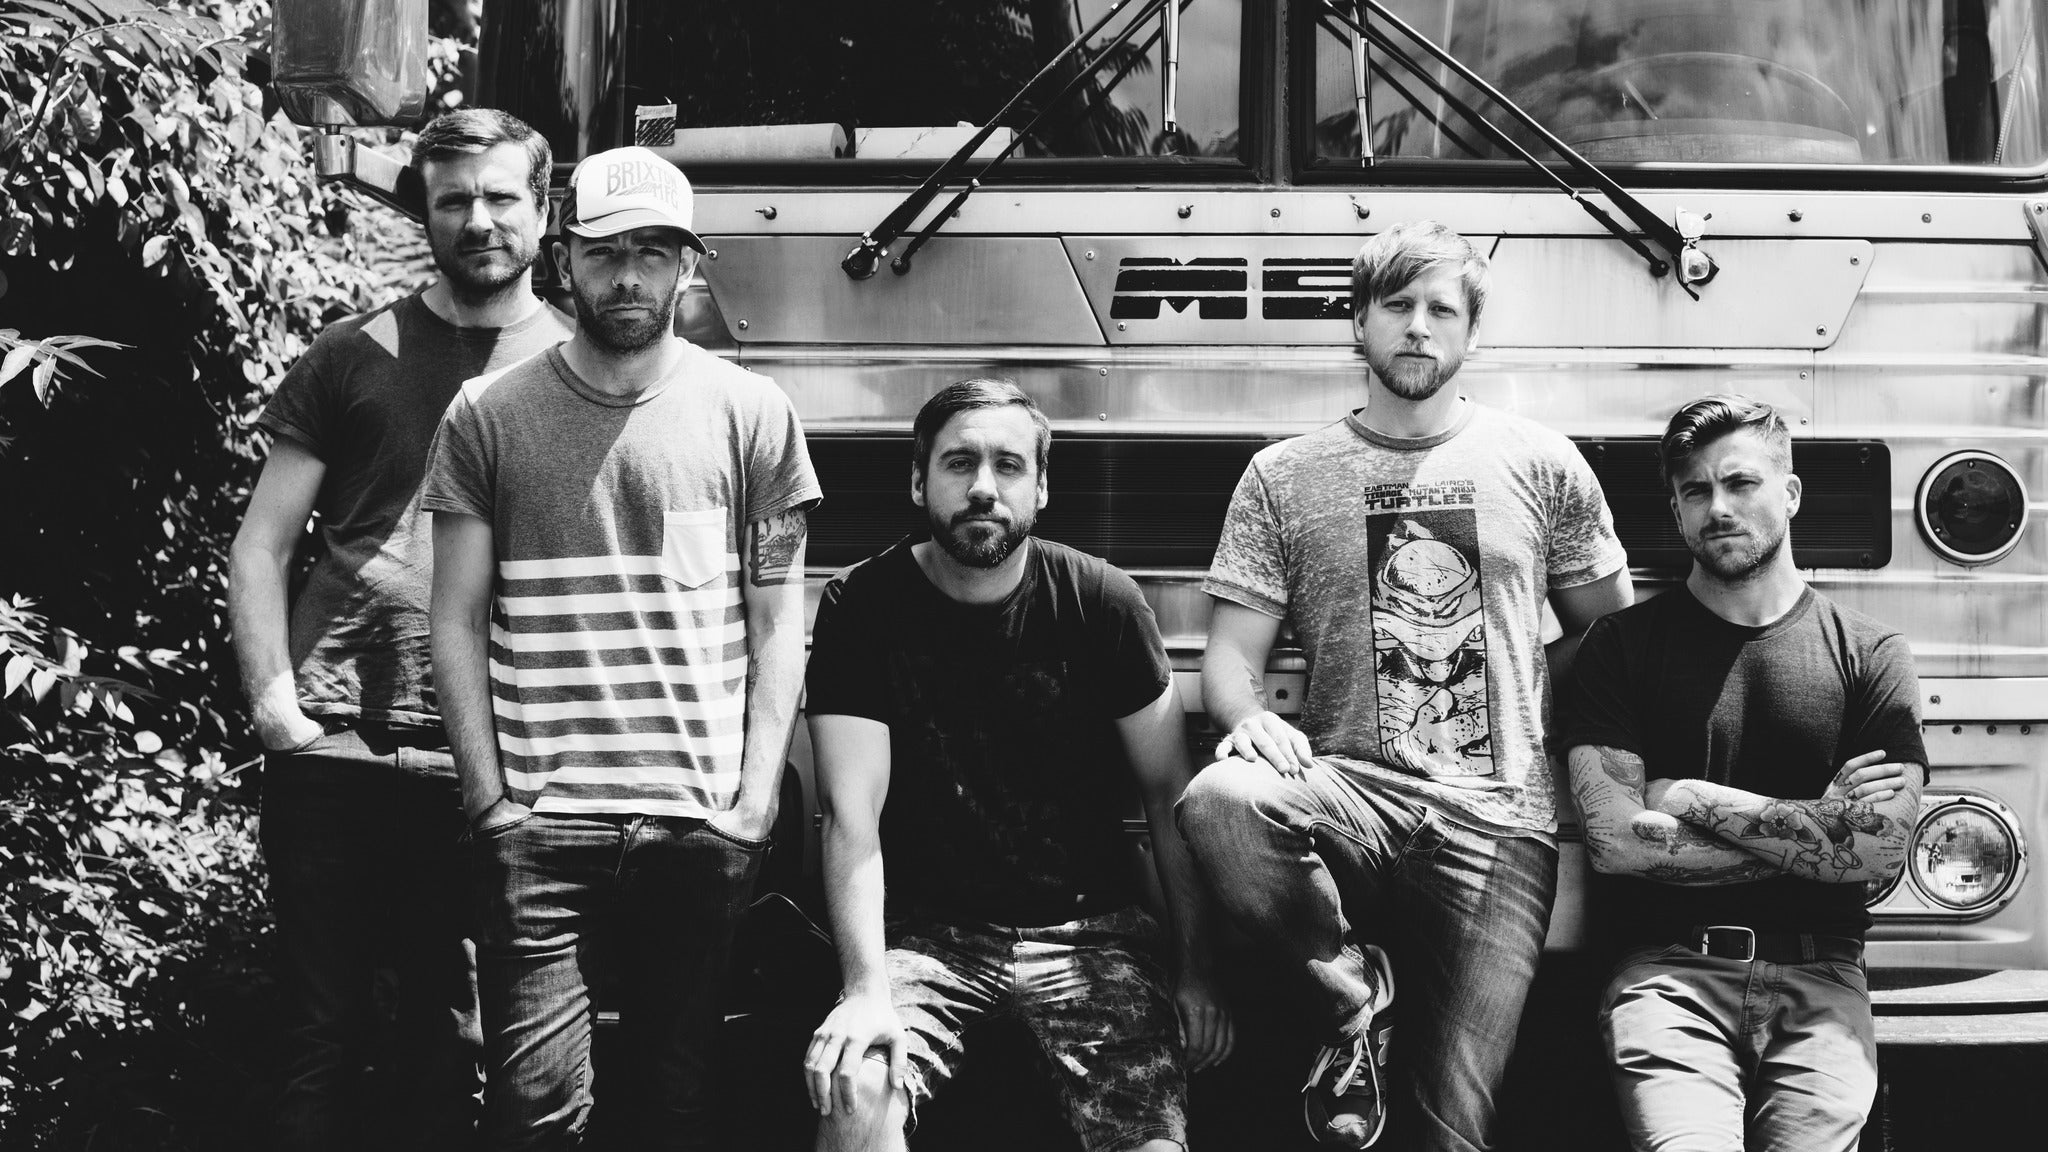 Circa Survive On Letting Go 10 Year Tour at Revolution Live - Ft Lauderdale, FL 33312